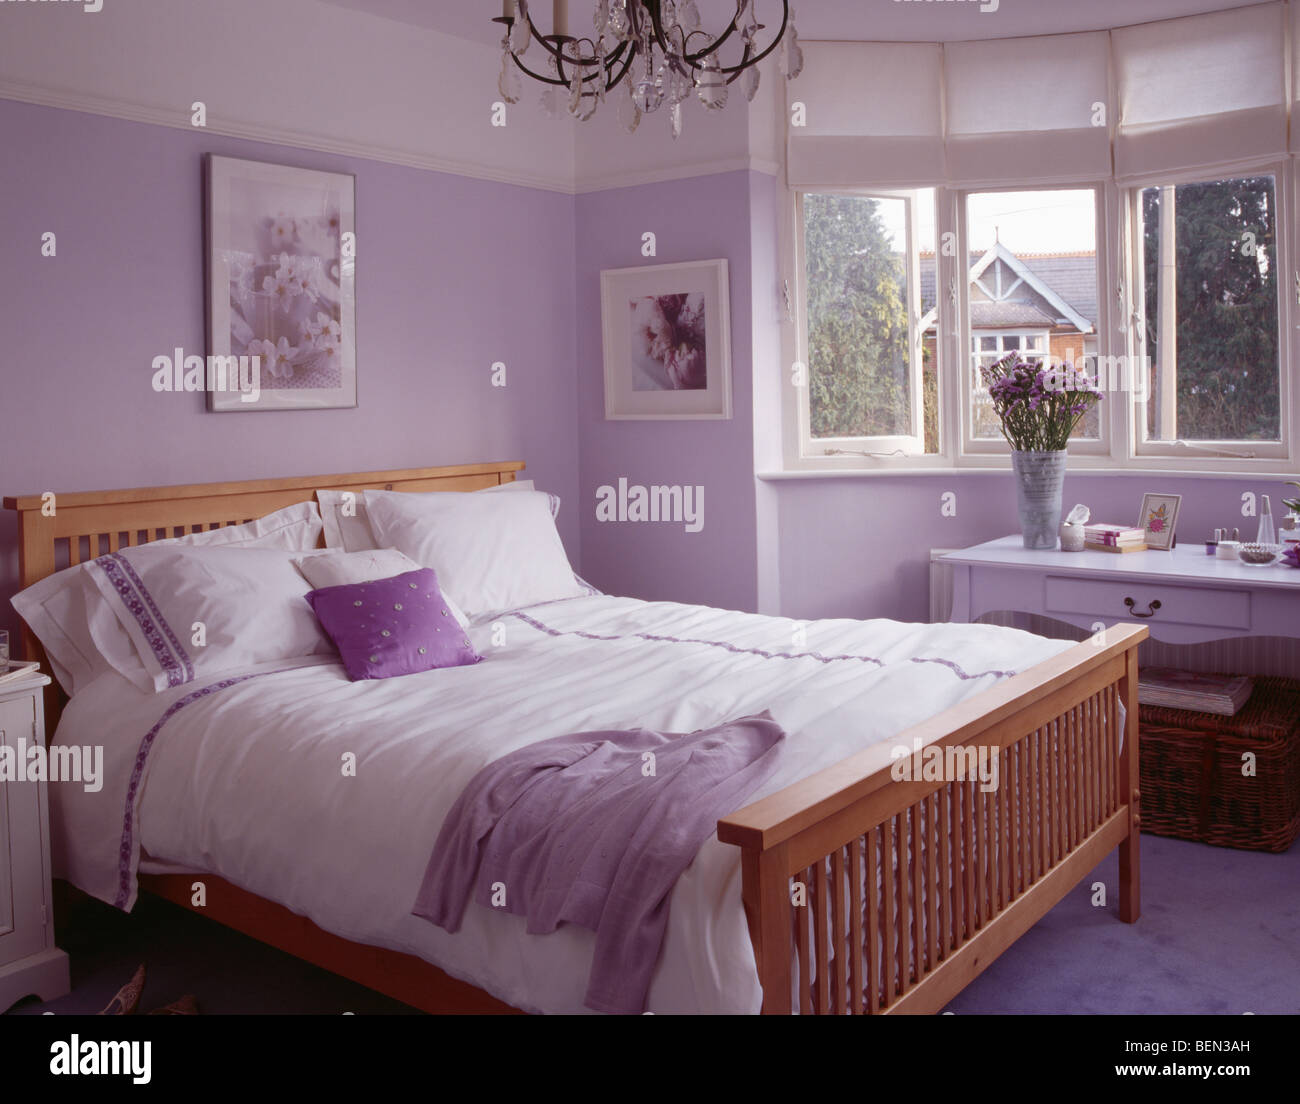 White pillows and bedlinen on wooden bed in mauve bedroom ...